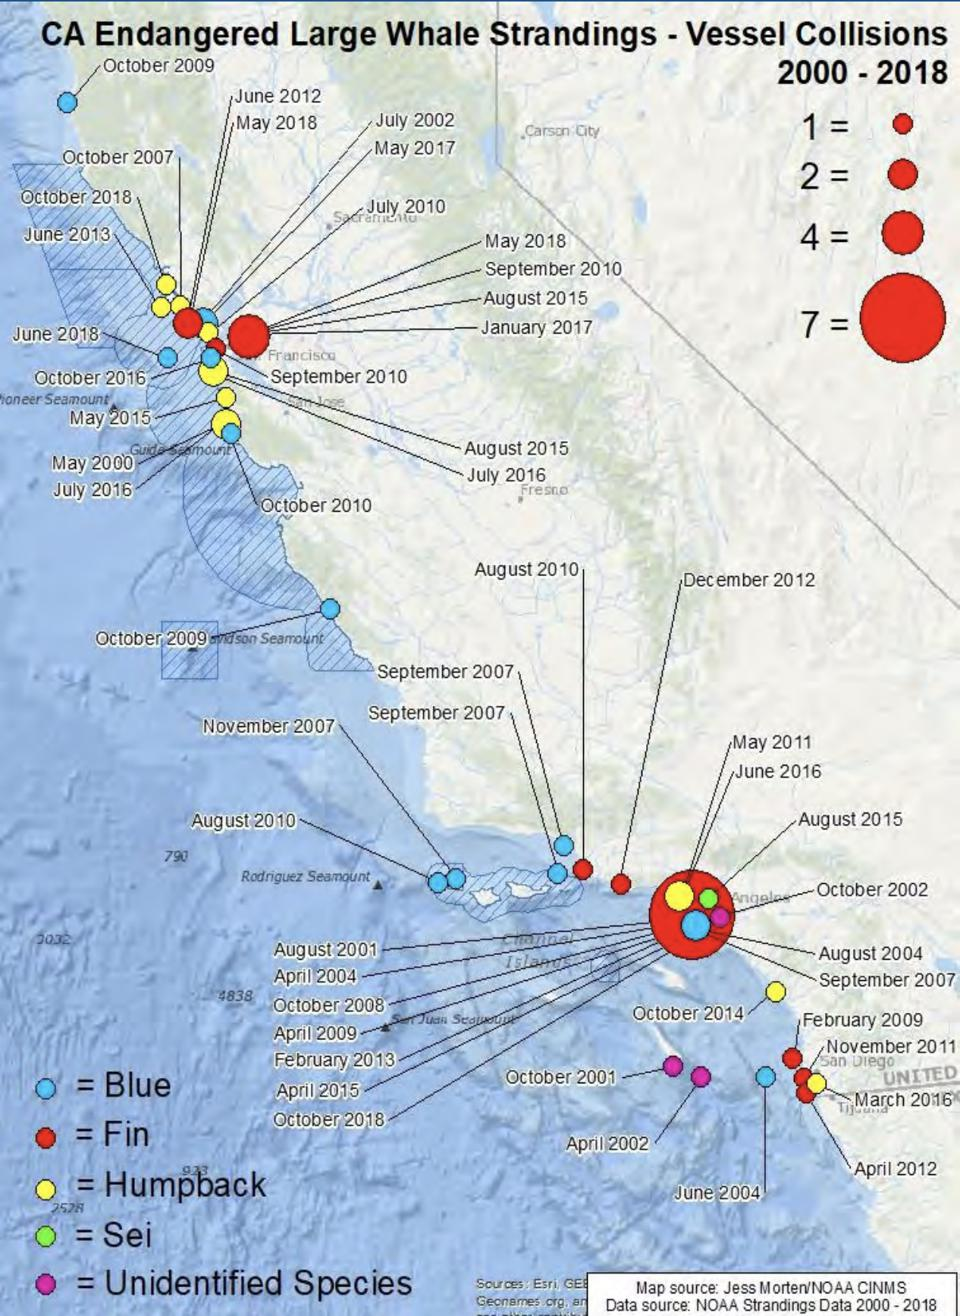 Map of endangered whale strandings caused by vessel collisions between 2000 and 2018 along the California coast.